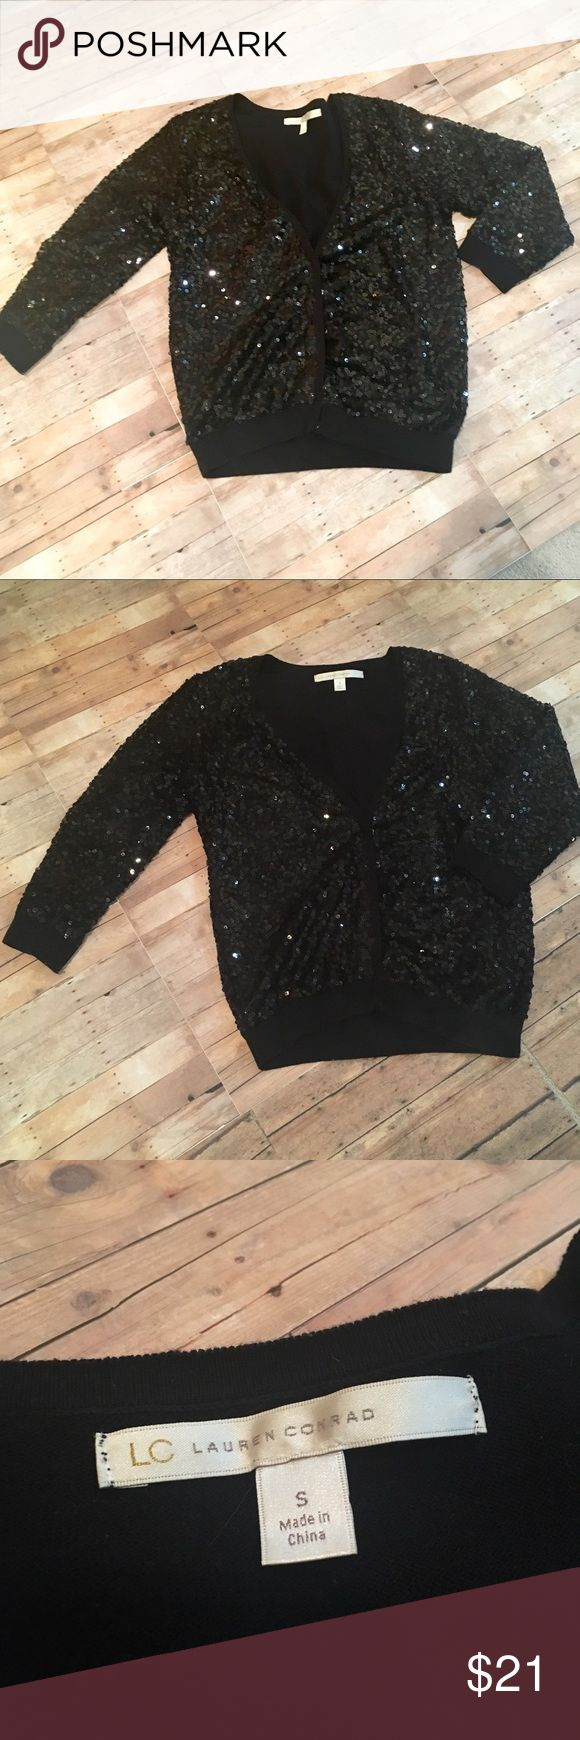 "LC Lauren Conrad Black Sequin Cardigan. LC Lauren Conrad Black sparkly sequin cardigan. In excellent condition. Snap close sweater. Size is women's small.  Body length: 20-21"" Chest: 14-15"" LC Lauren Conrad Sweaters Cardigans"